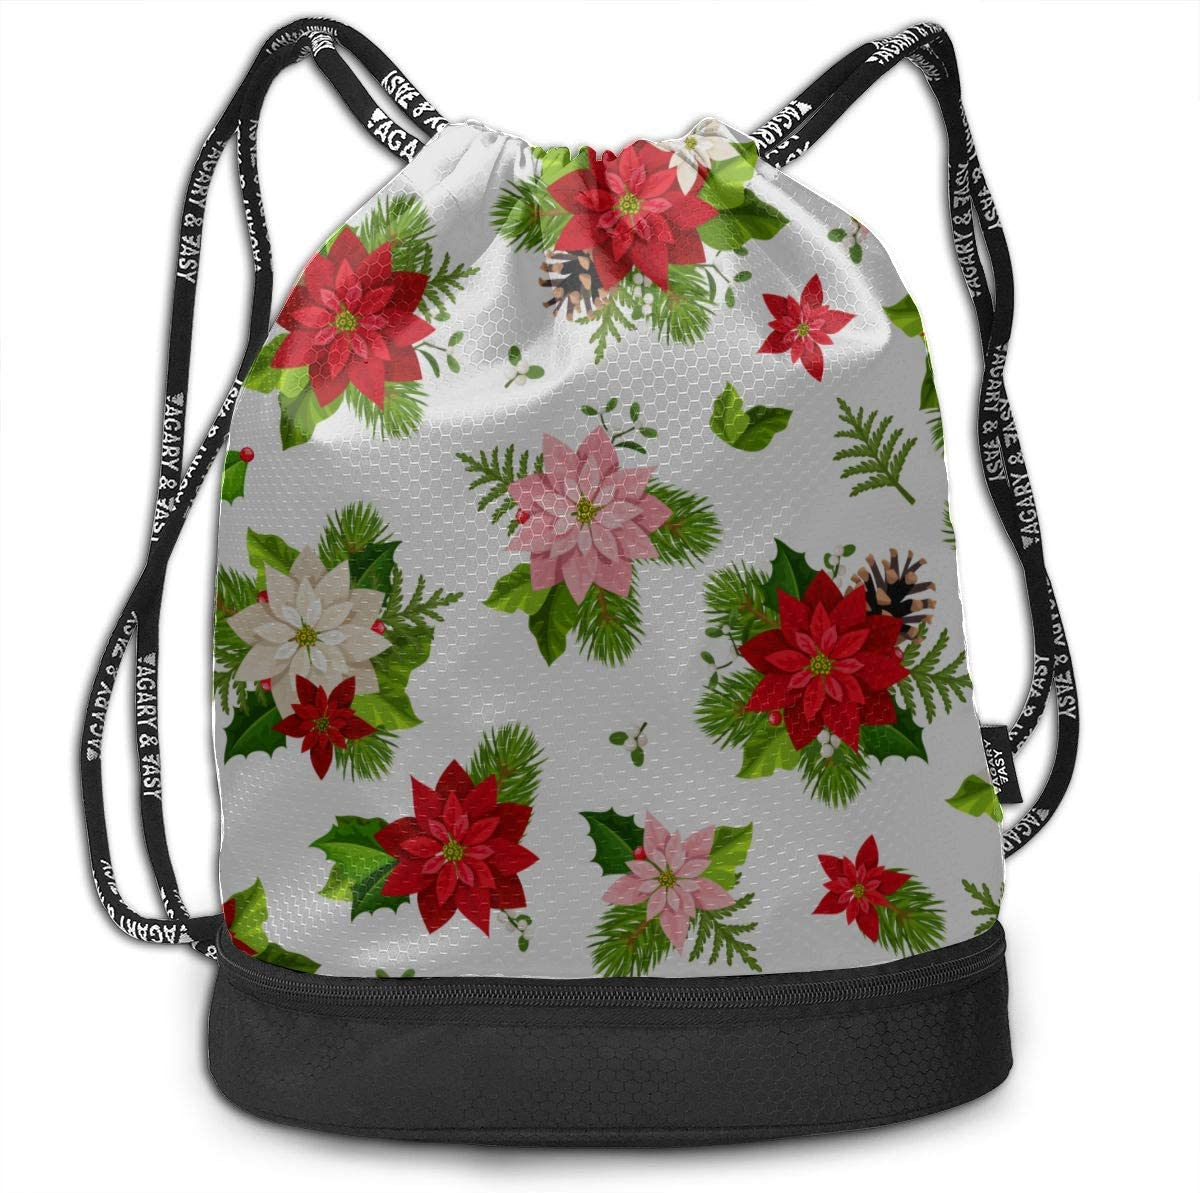 Womens Gym Bags Red Flower Poinsettia Gym Drawstring Bags Backpack Sports String Bundle Backpack For Sport With Shoe Pocket Gym Small Bag For Women